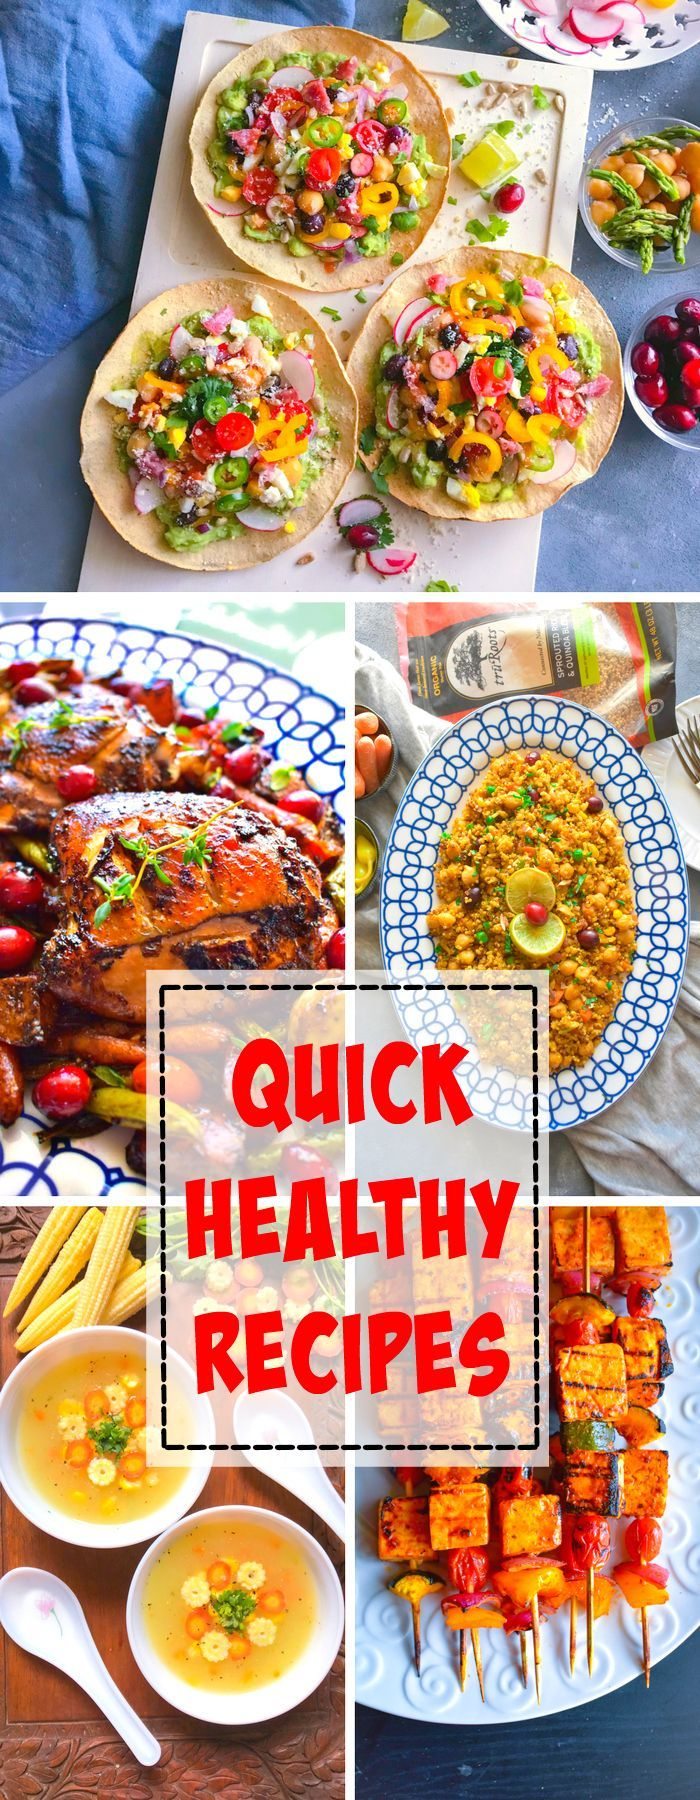 Healthy Recipes that look Gourmet & Taste Yum: #healthy #breakfast #lunch #dinner #glutenfree #vegan #meat Being overweight or clinically obese is a condition that's caused by having a high calorie intake and low energy expenditure. In order to lose weight, you can either reduce your calorie intake, or else exercise regularly and reduce your calorie intake at the same time. It's always more beneficial to exercise as well. Many people don't exercise correctly when they want to lose...